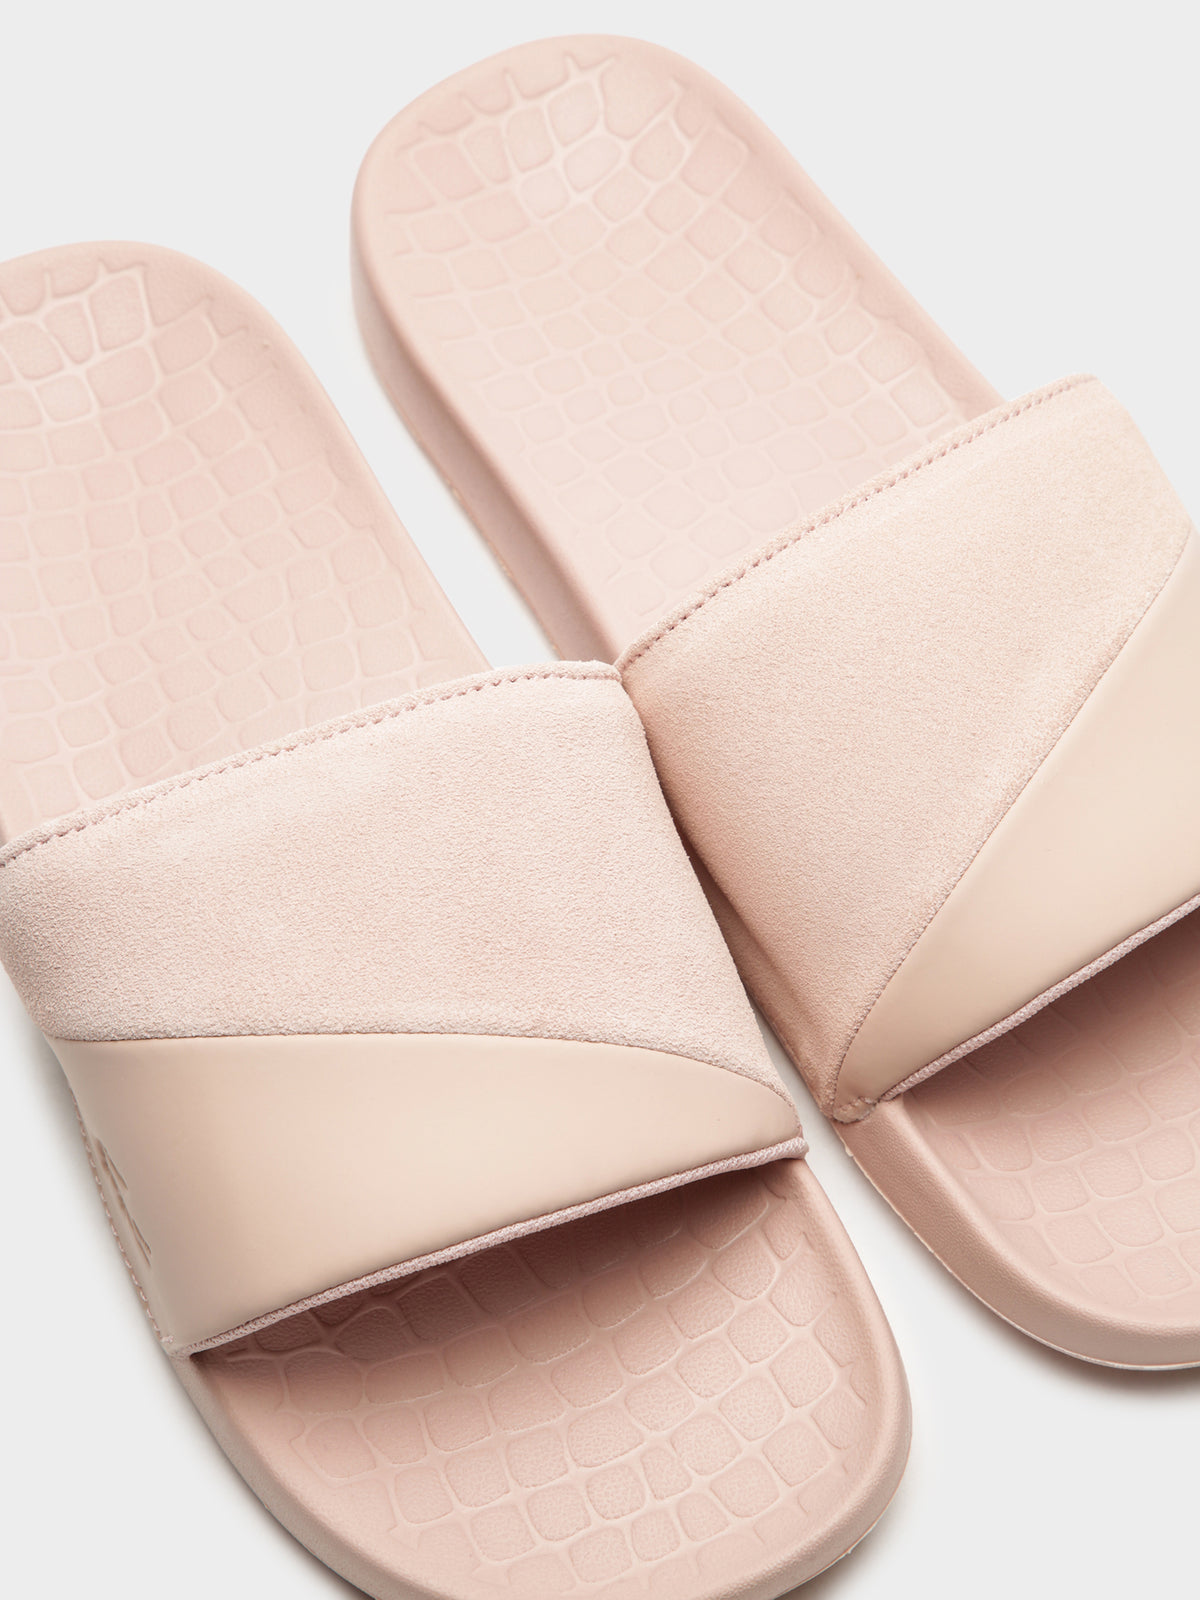 Men's Fraisier 118 4 Slides in Pink